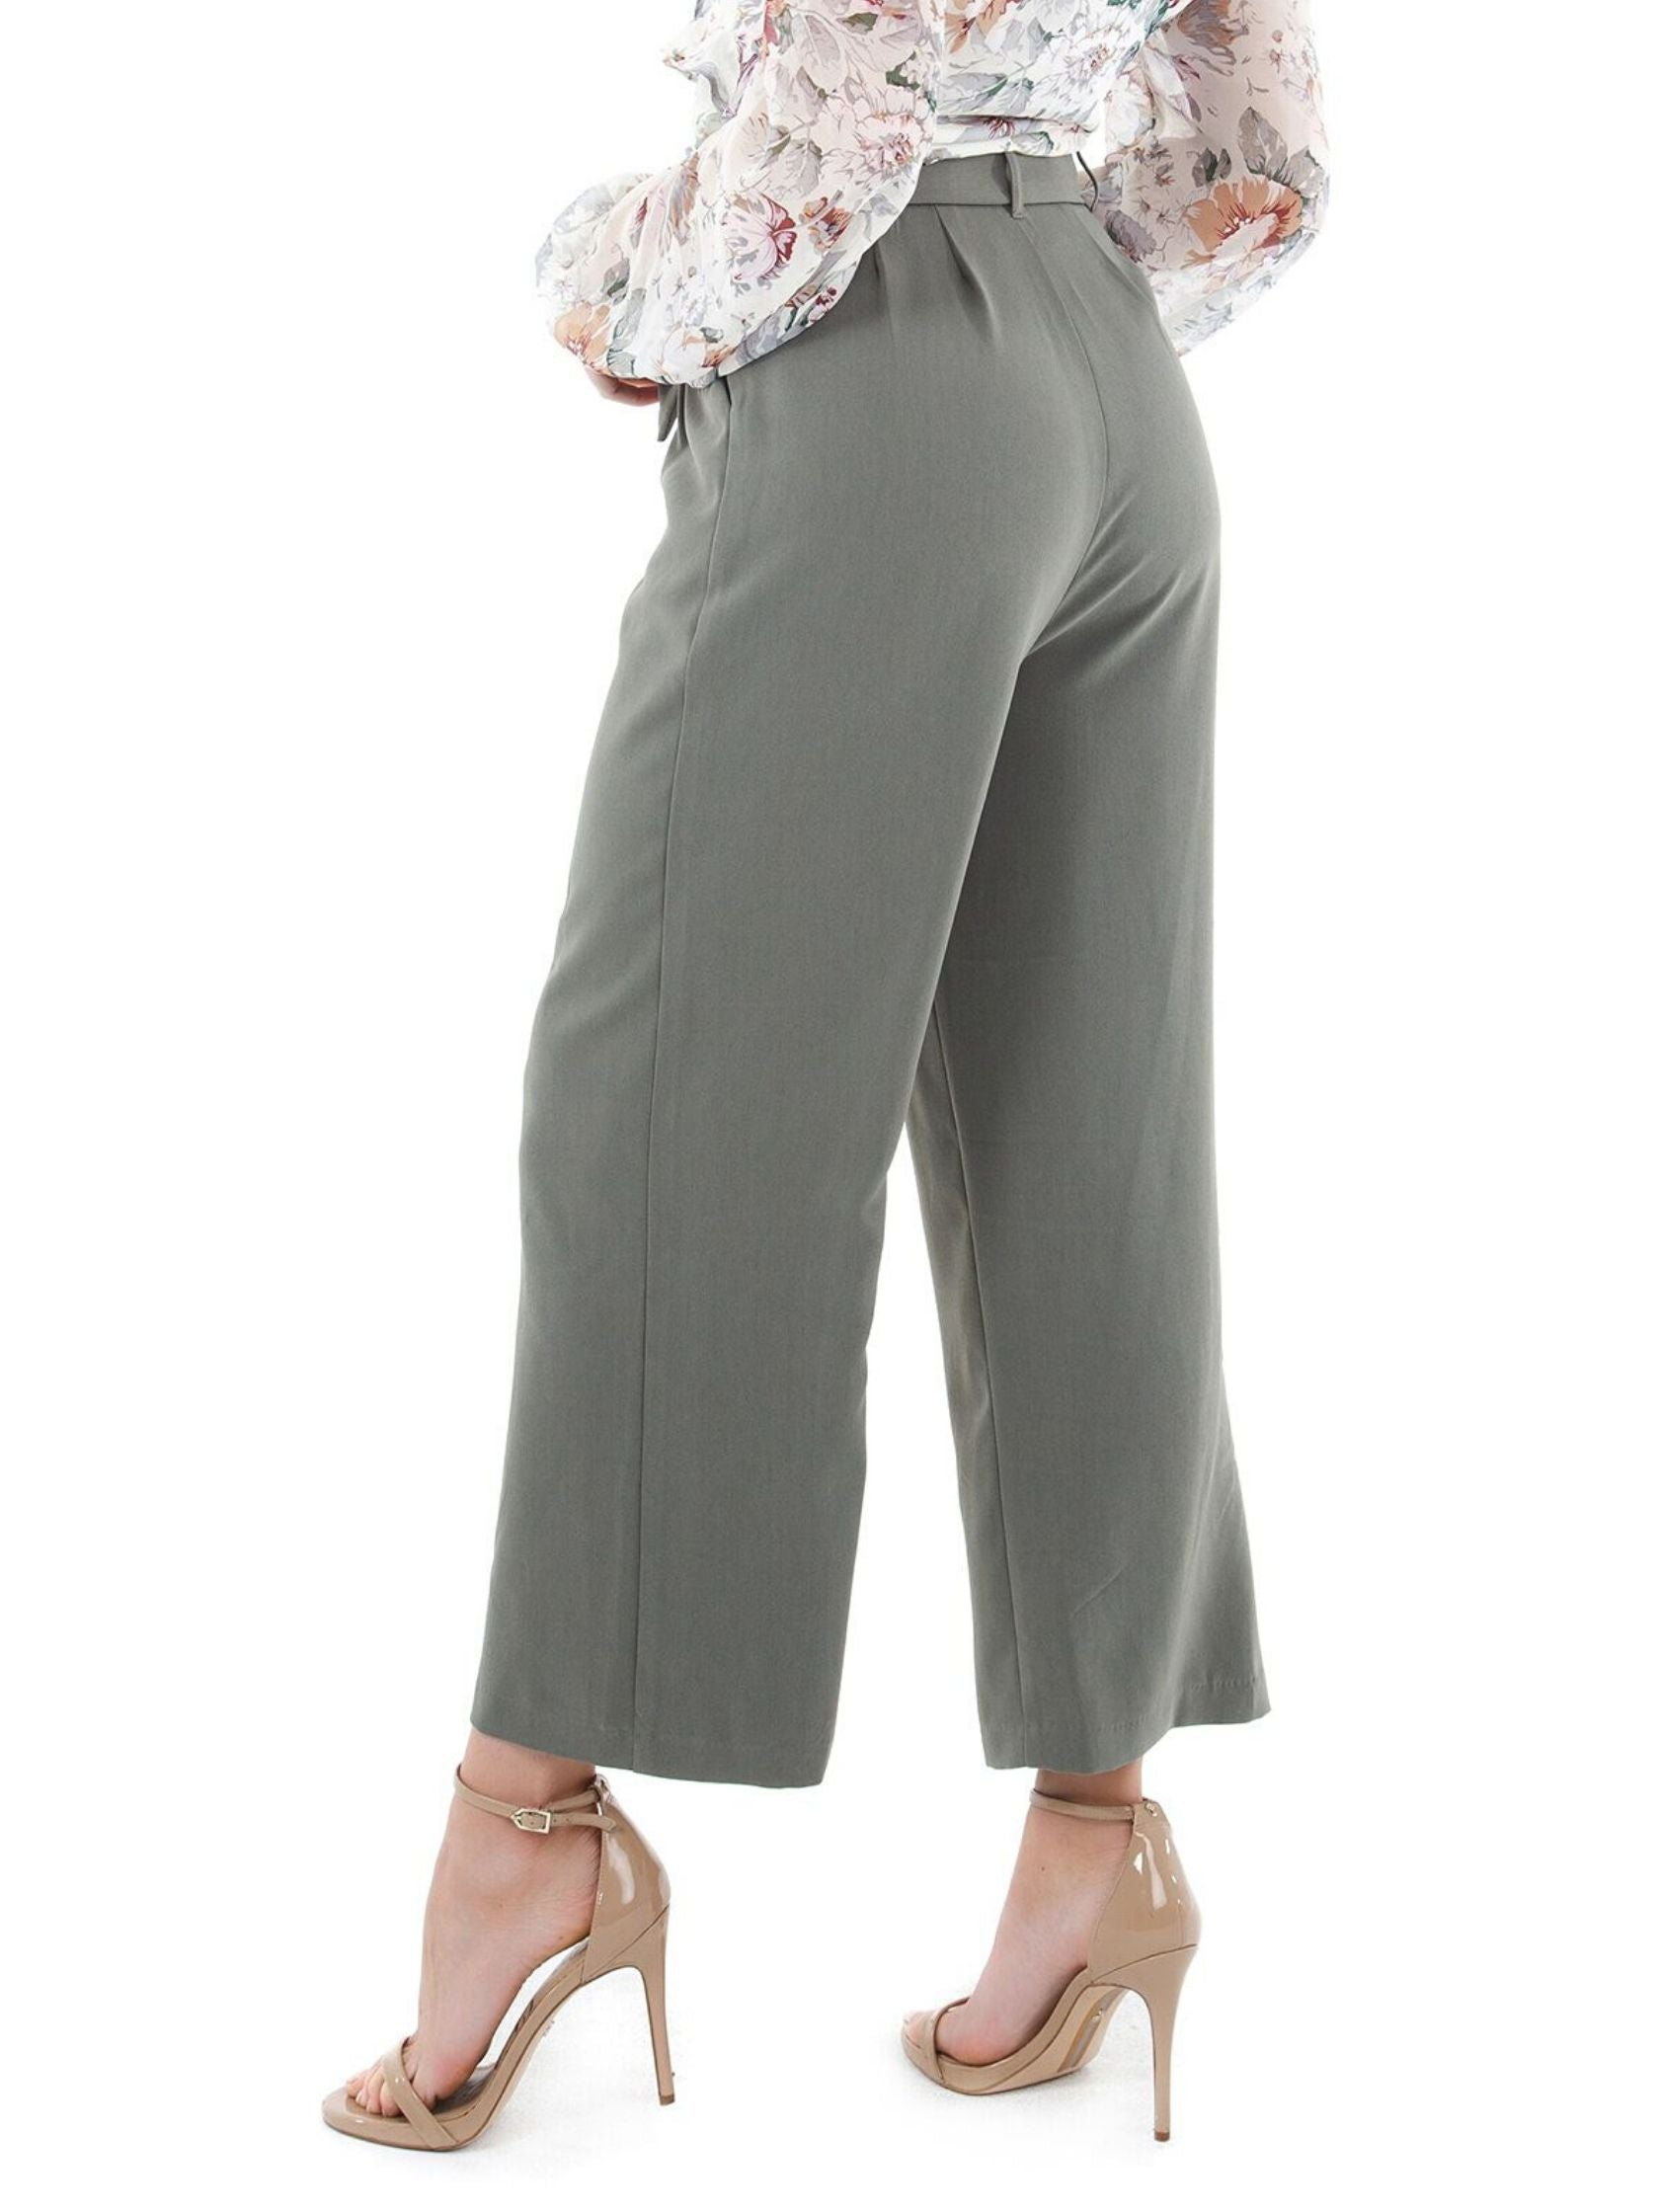 Women outfit in a pants rental from BB Dakota called Go With The Flow Cropped Pant